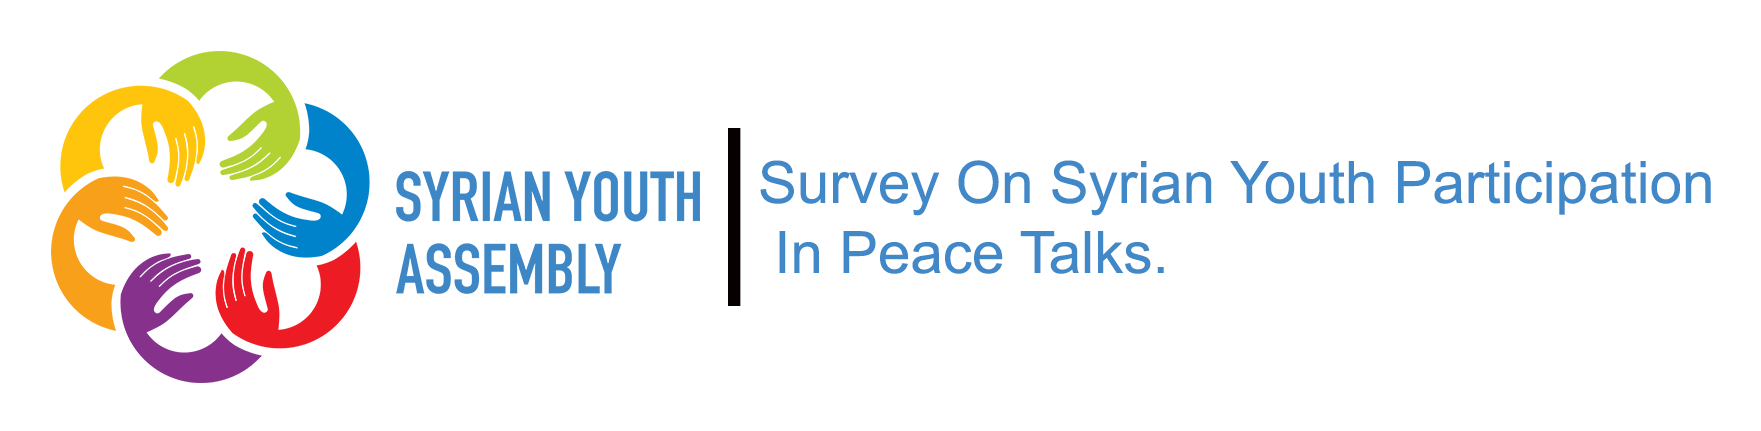 Syrian Youth Assembly Survey